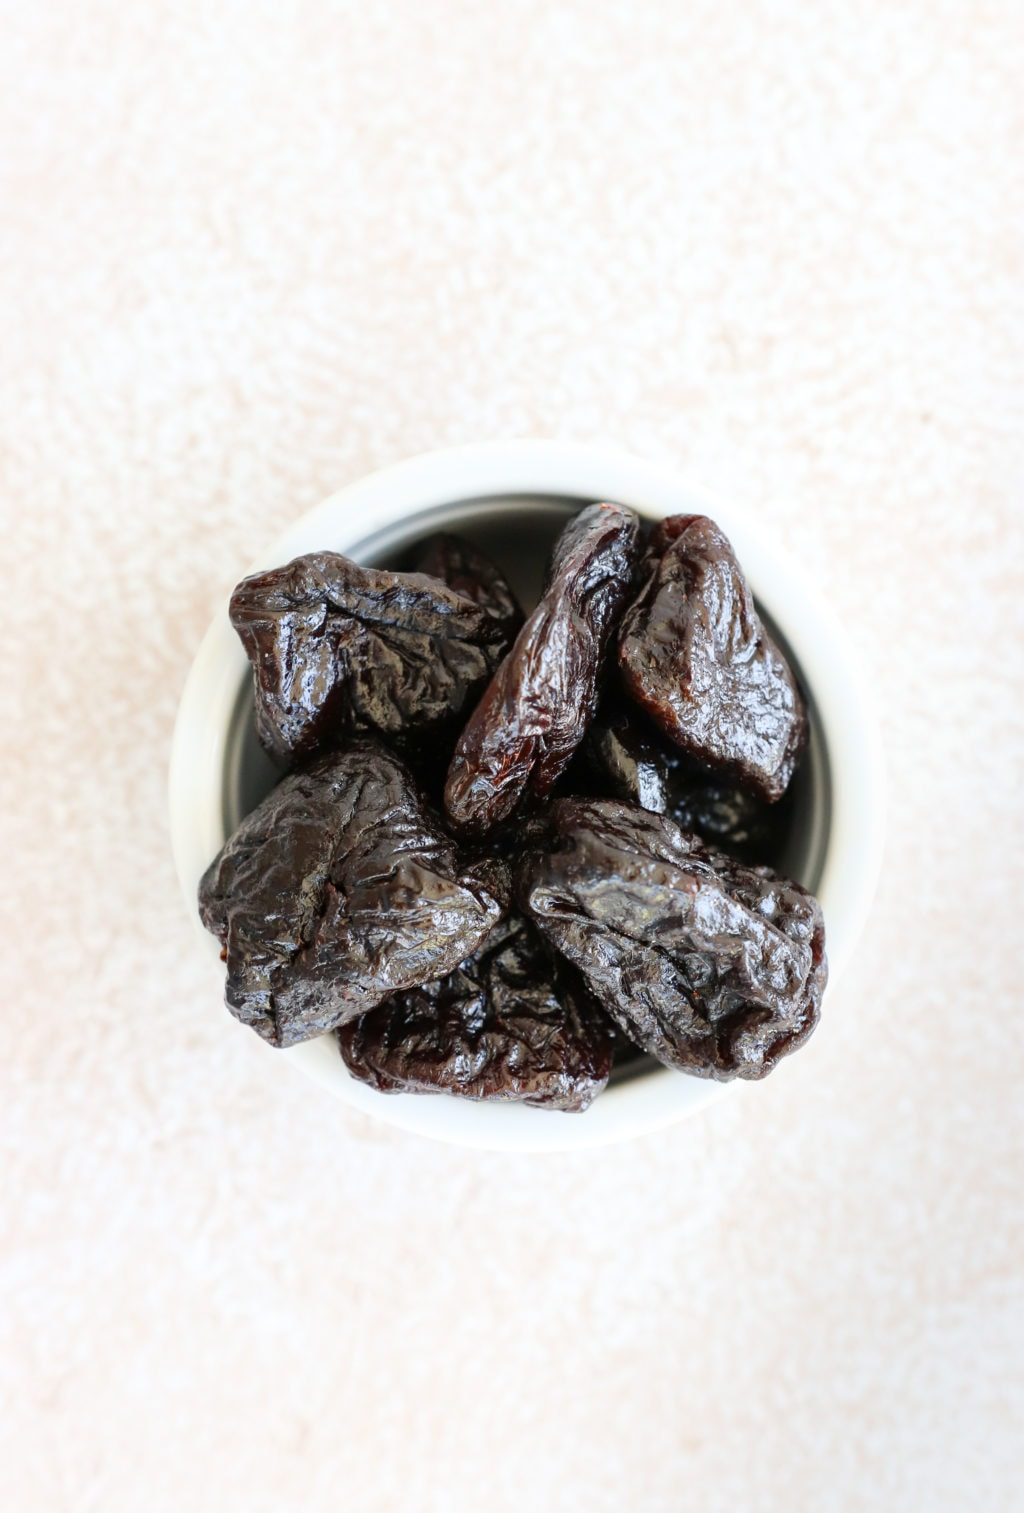 Prunes in a white bowl over a food photography board.